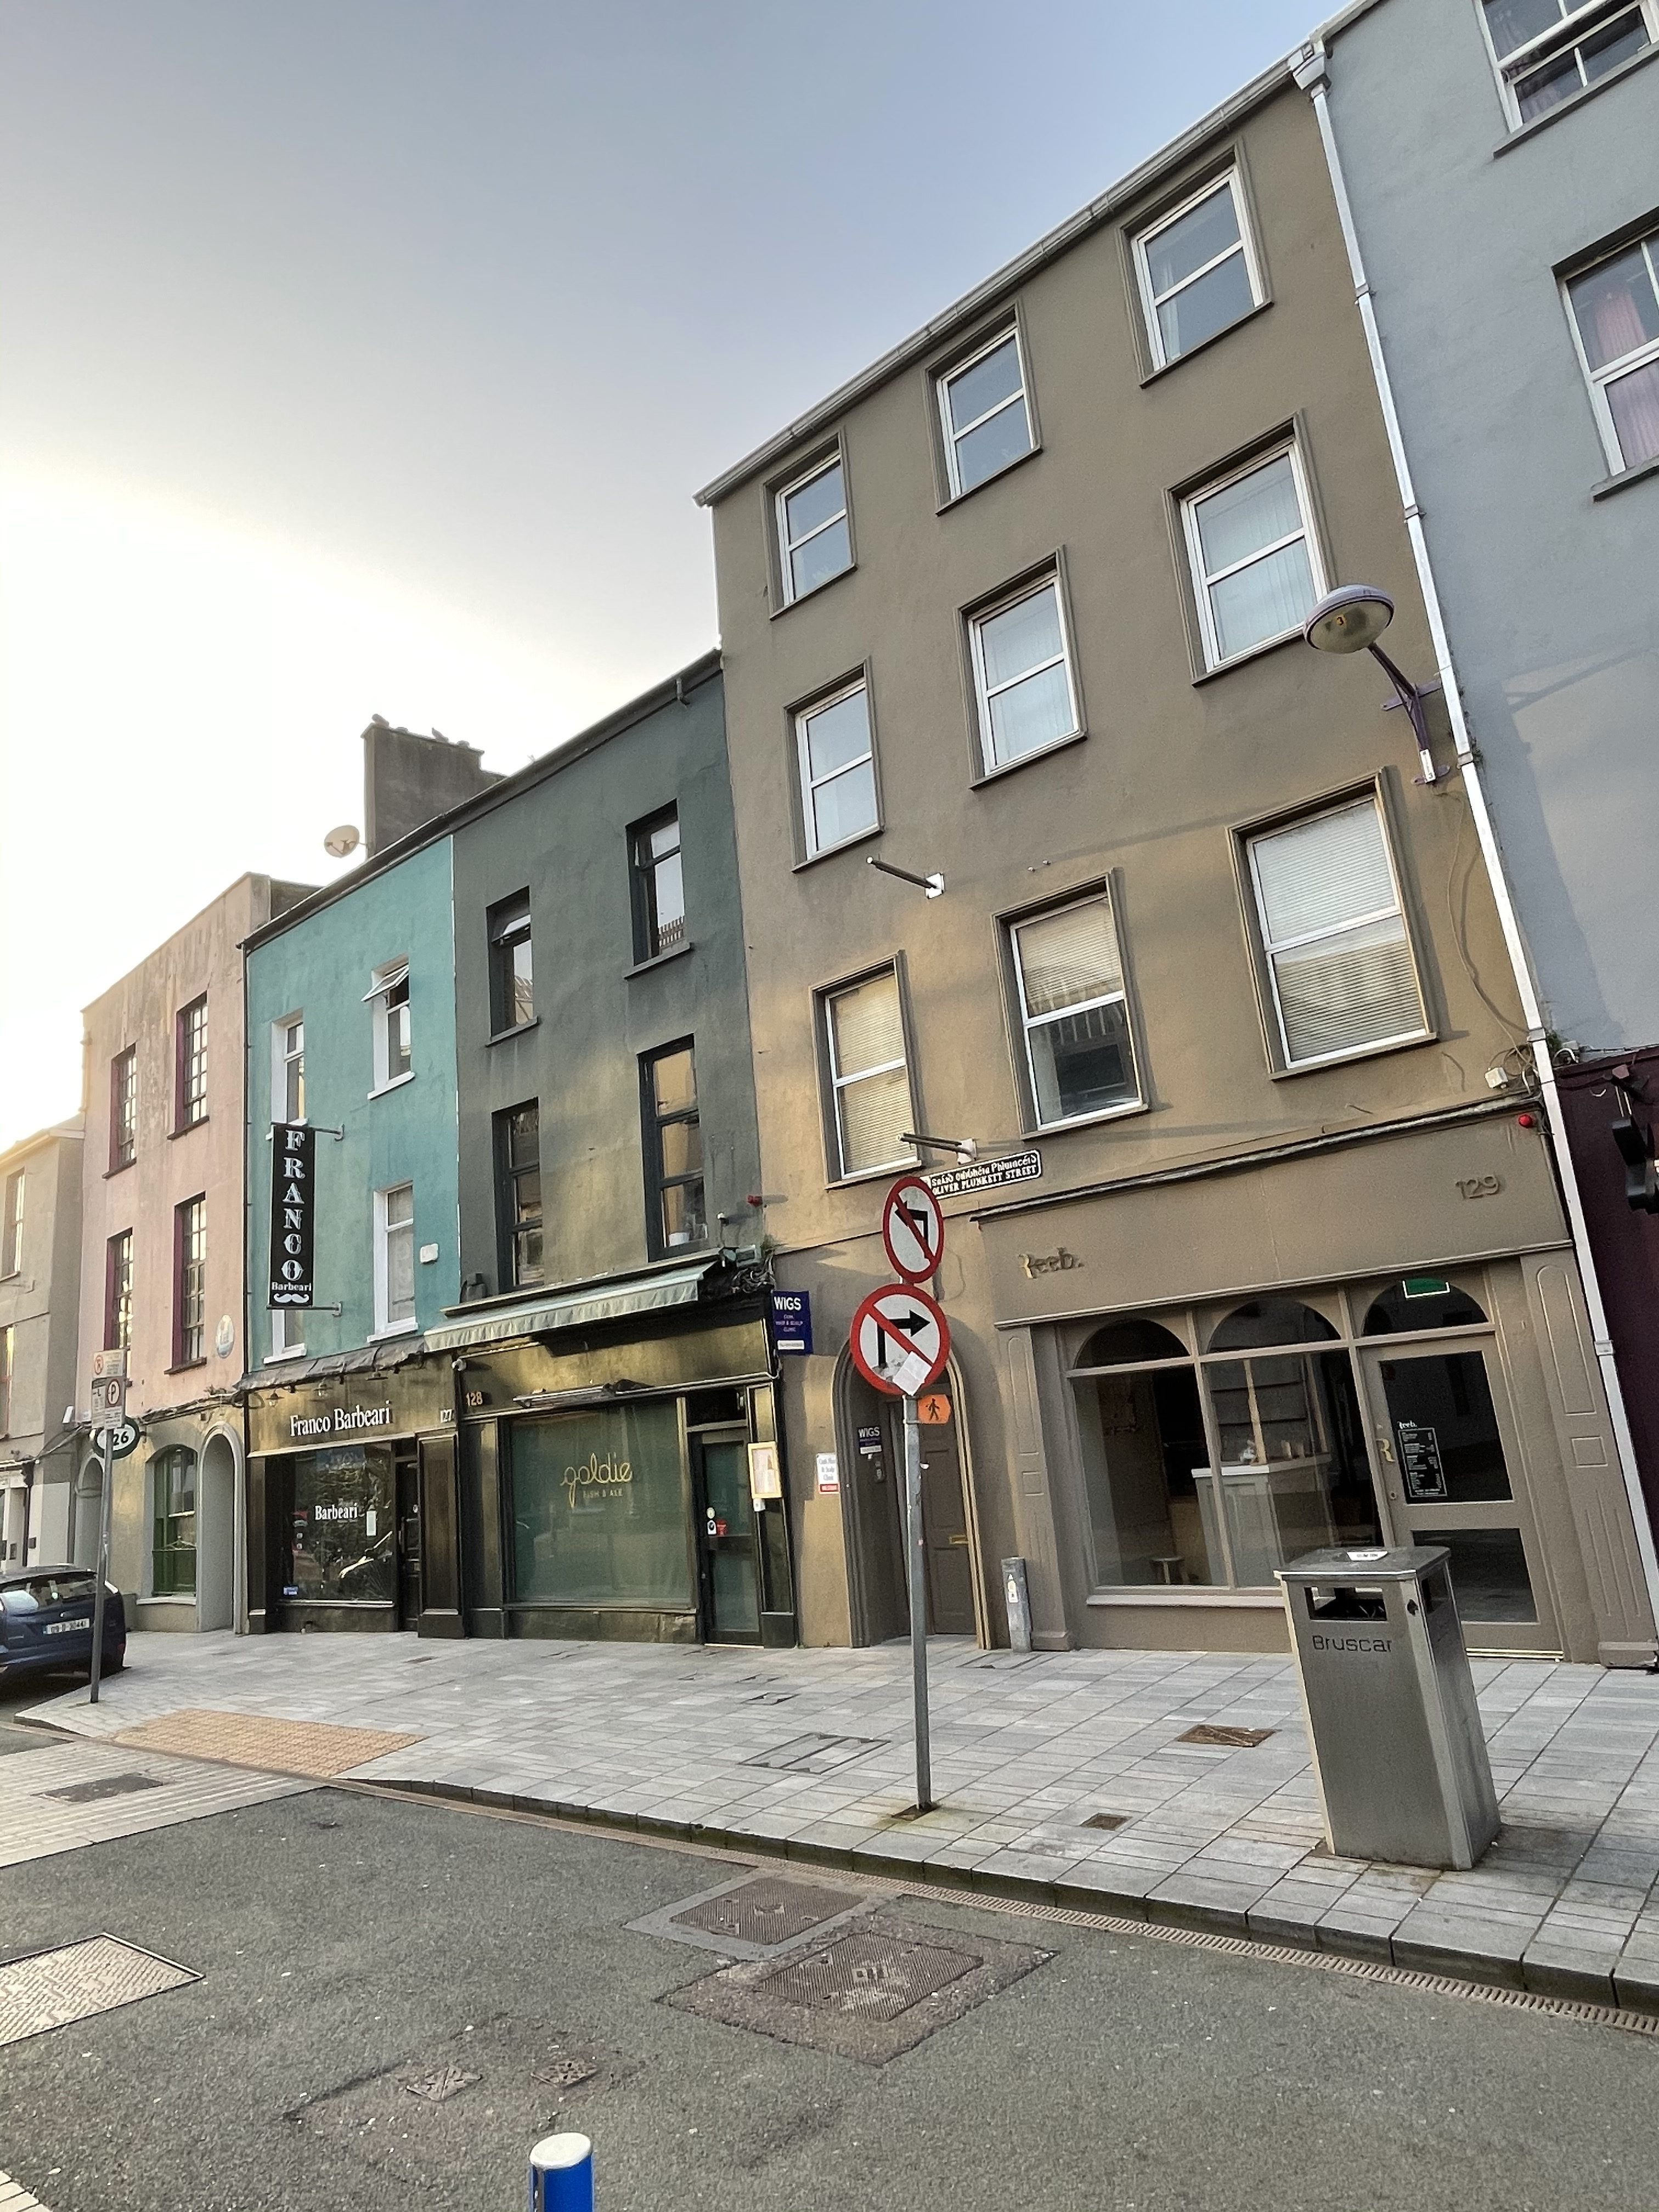 Four terraced three-bay by four-storey houses, built c. 1815 Oliver Plunkett Street, Cork, present day (picture: Kieran McCarthy)